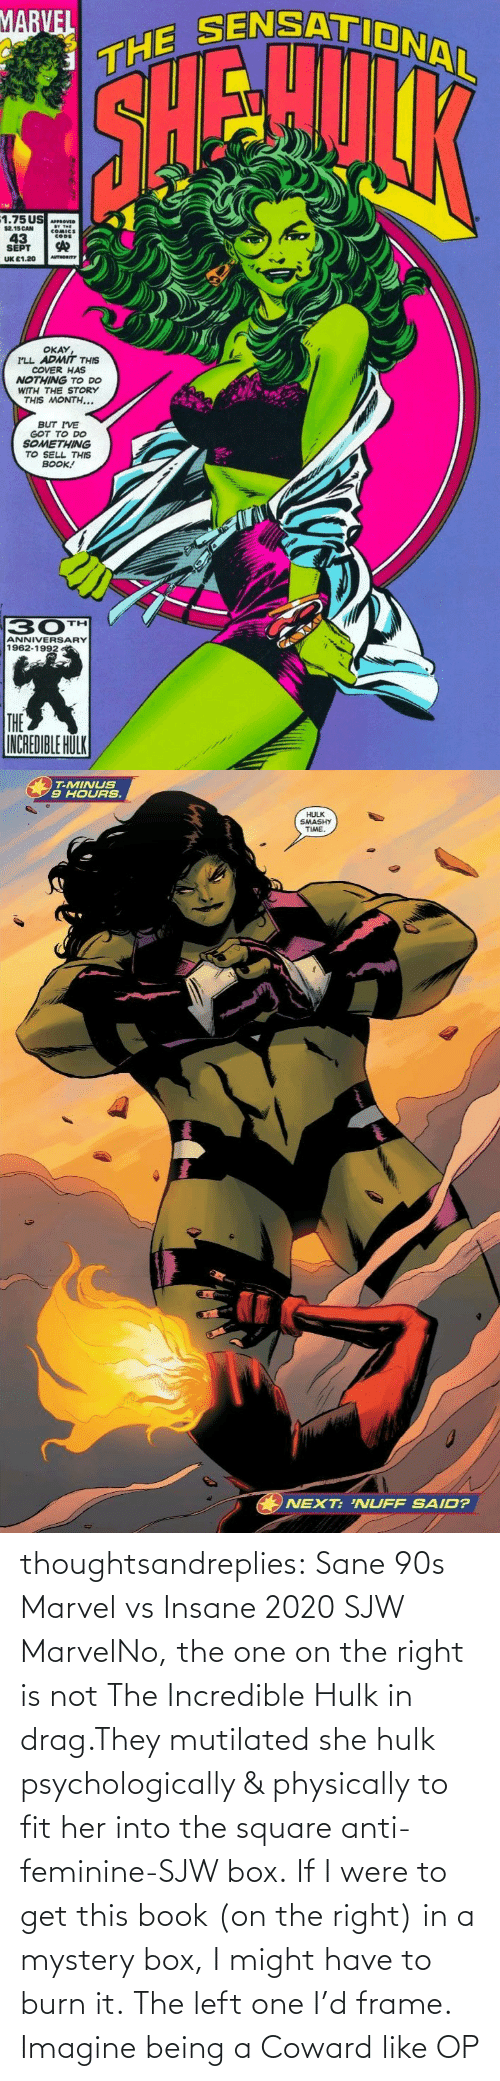 Not The: thoughtsandreplies:  Sane 90s Marvel vs Insane 2020 SJW MarvelNo, the one on the right is not The Incredible Hulk in drag.They mutilated she hulk psychologically & physically to fit her into the square anti-feminine-SJW box. If I were to get this book (on the right) in a mystery box, I might have to burn it. The left one I'd frame.    Imagine being a Coward like OP